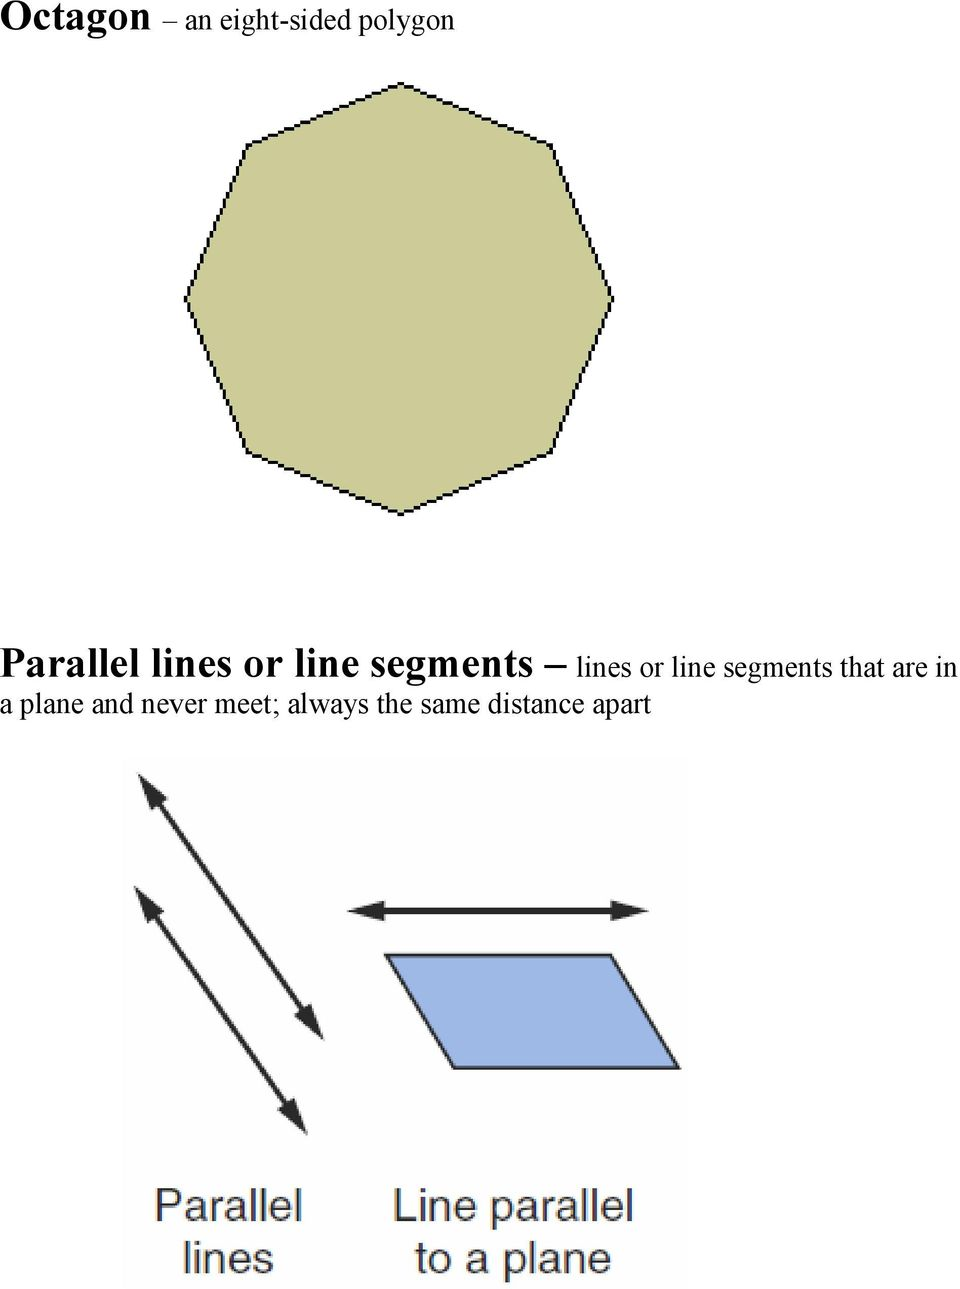 or line segments that are in a plane